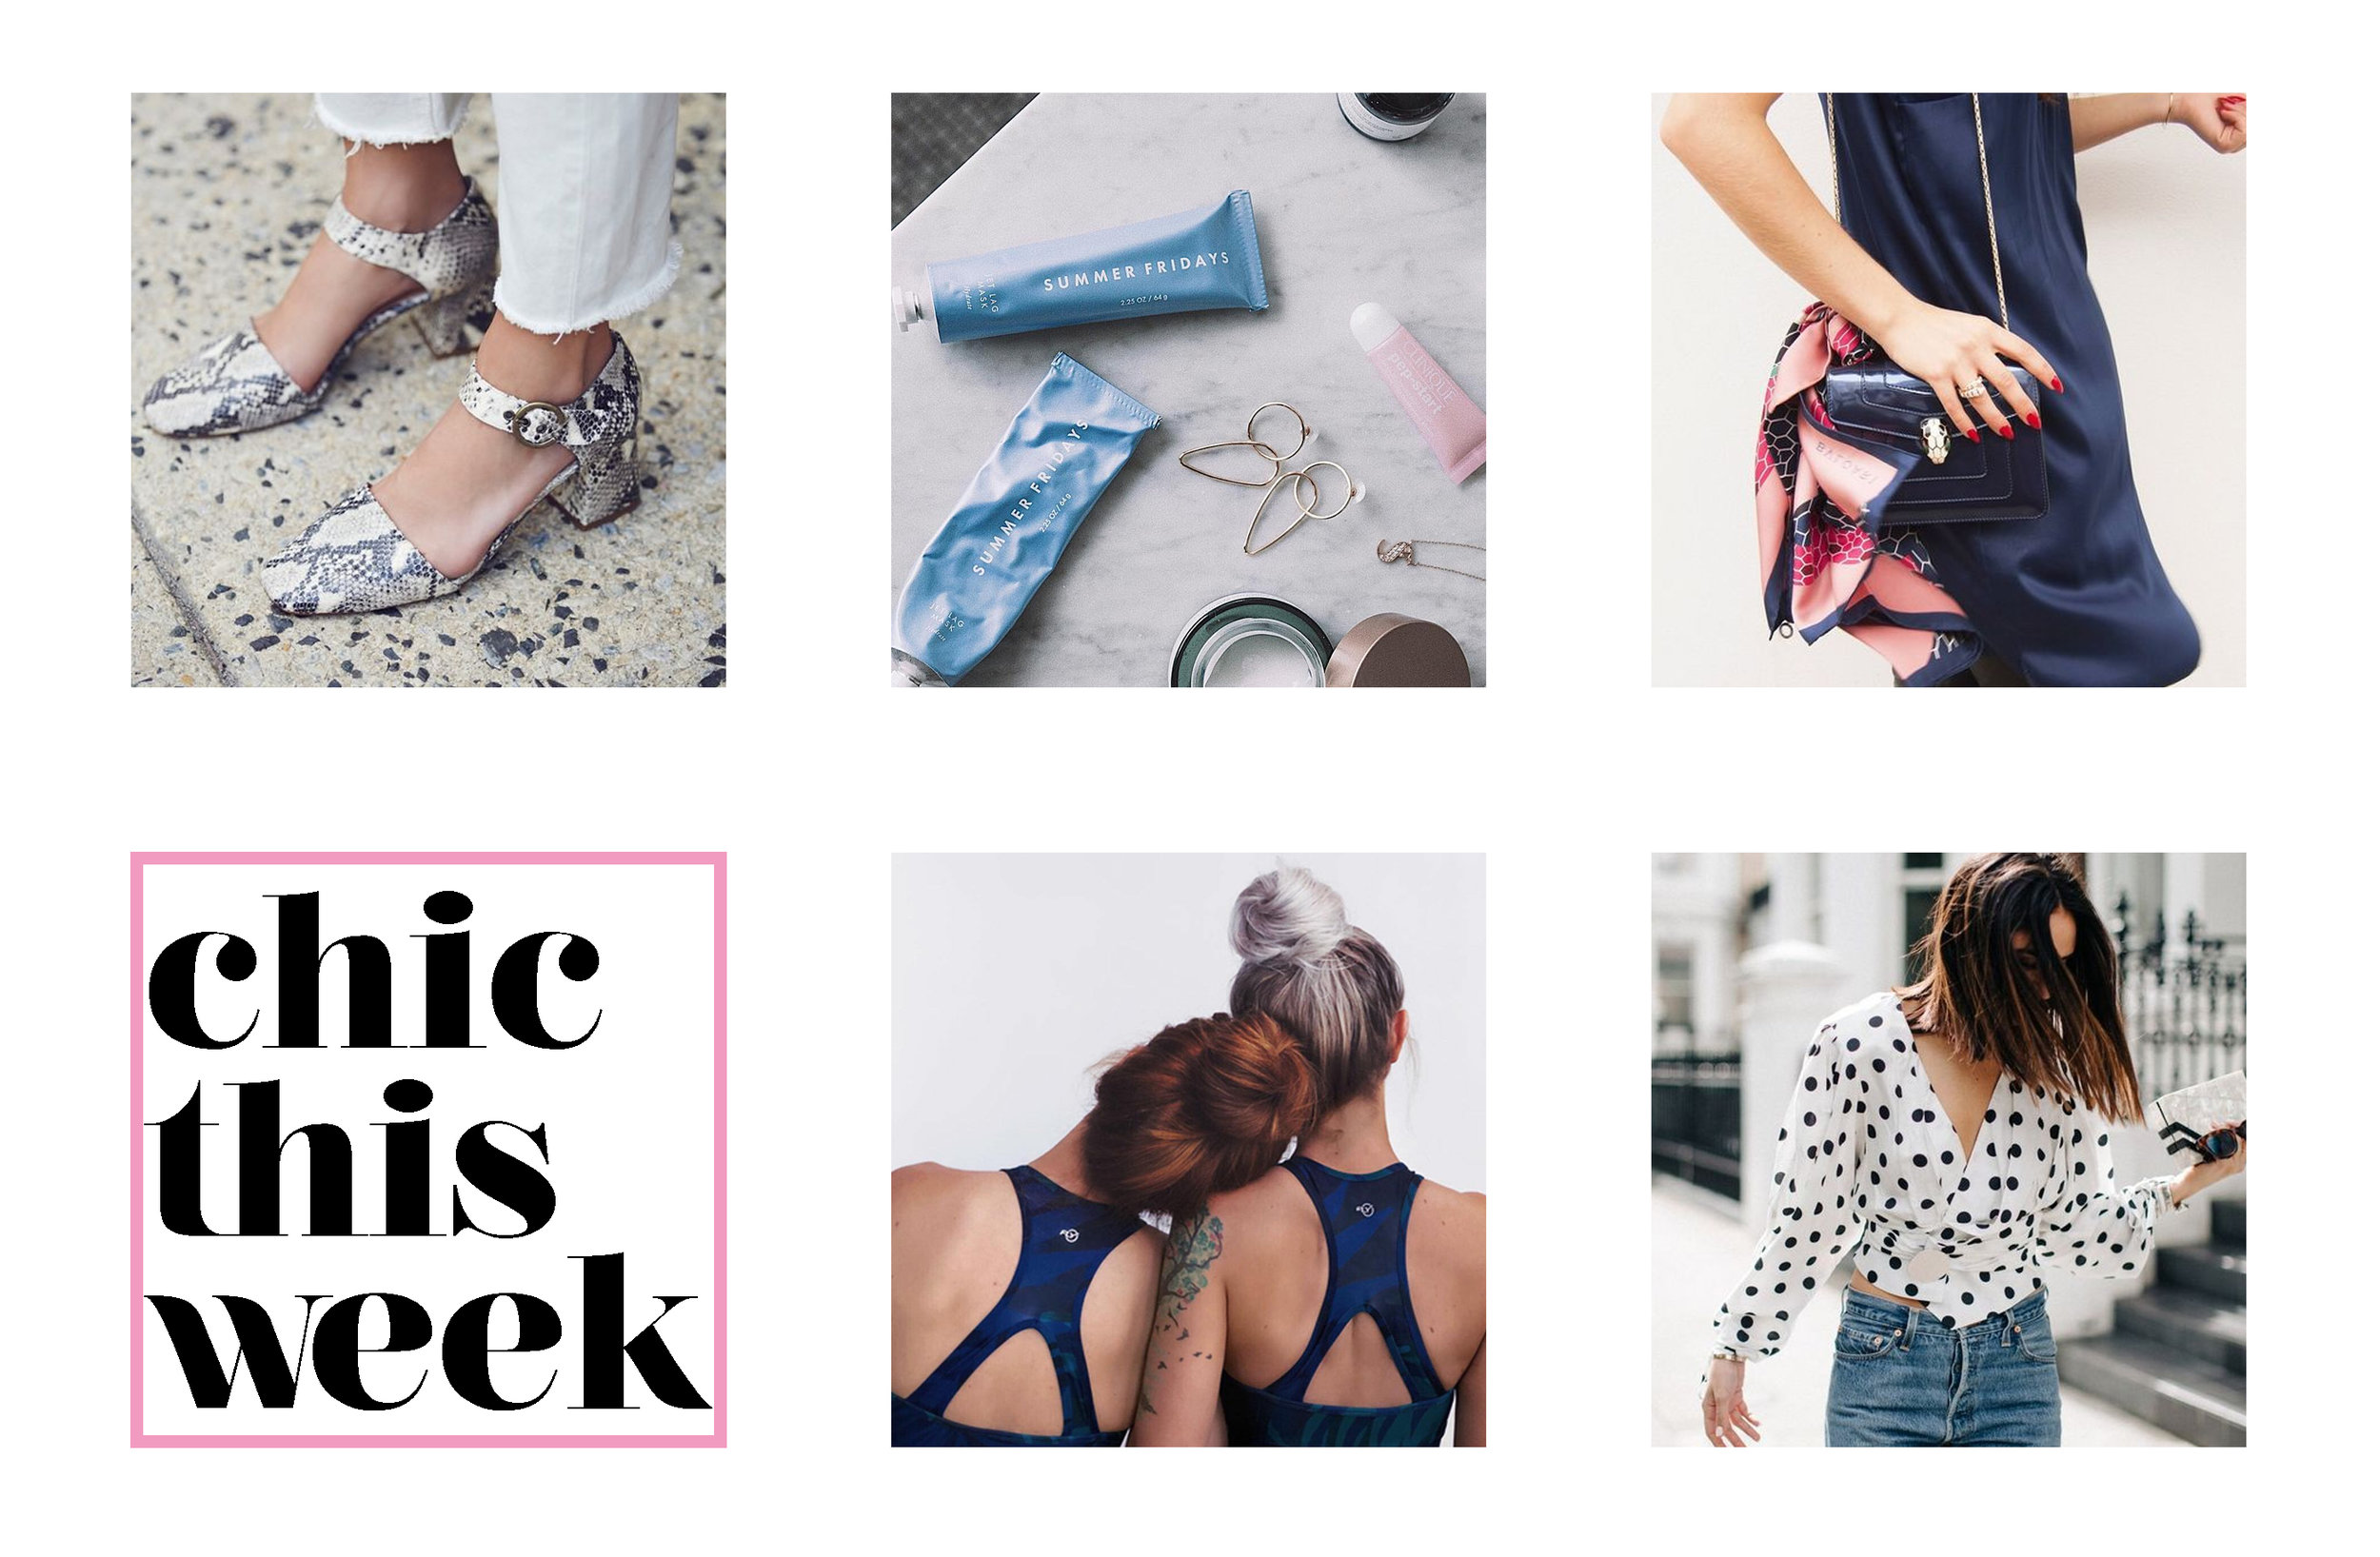 What's CHIC this week (vol. 053)